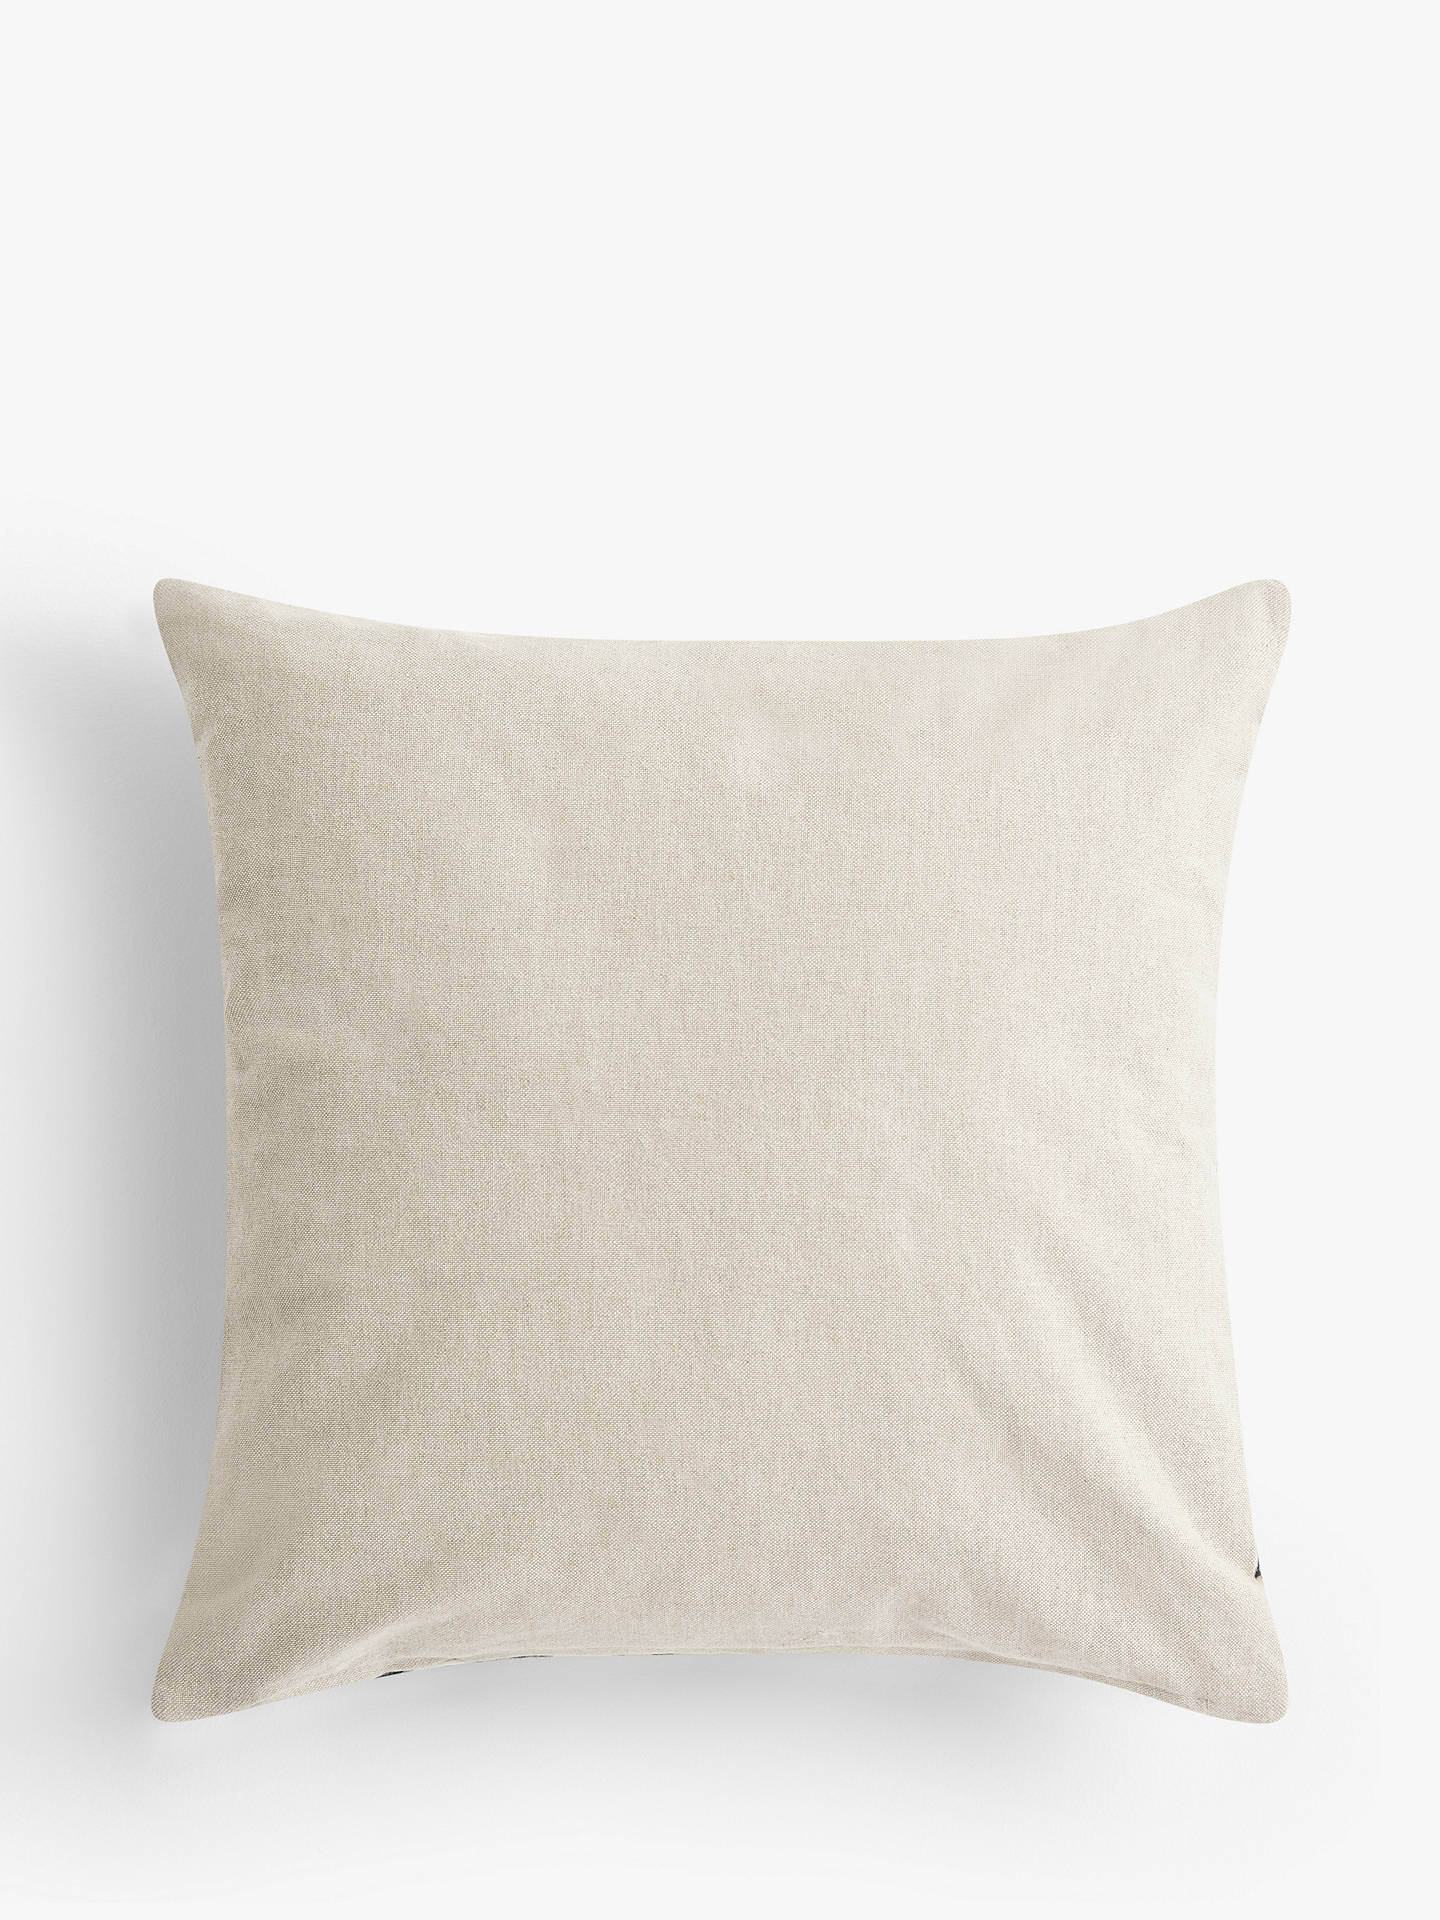 Buy John Lewis & Partners Eave Embroidery Cushion, Navy / Grey Online at johnlewis.com